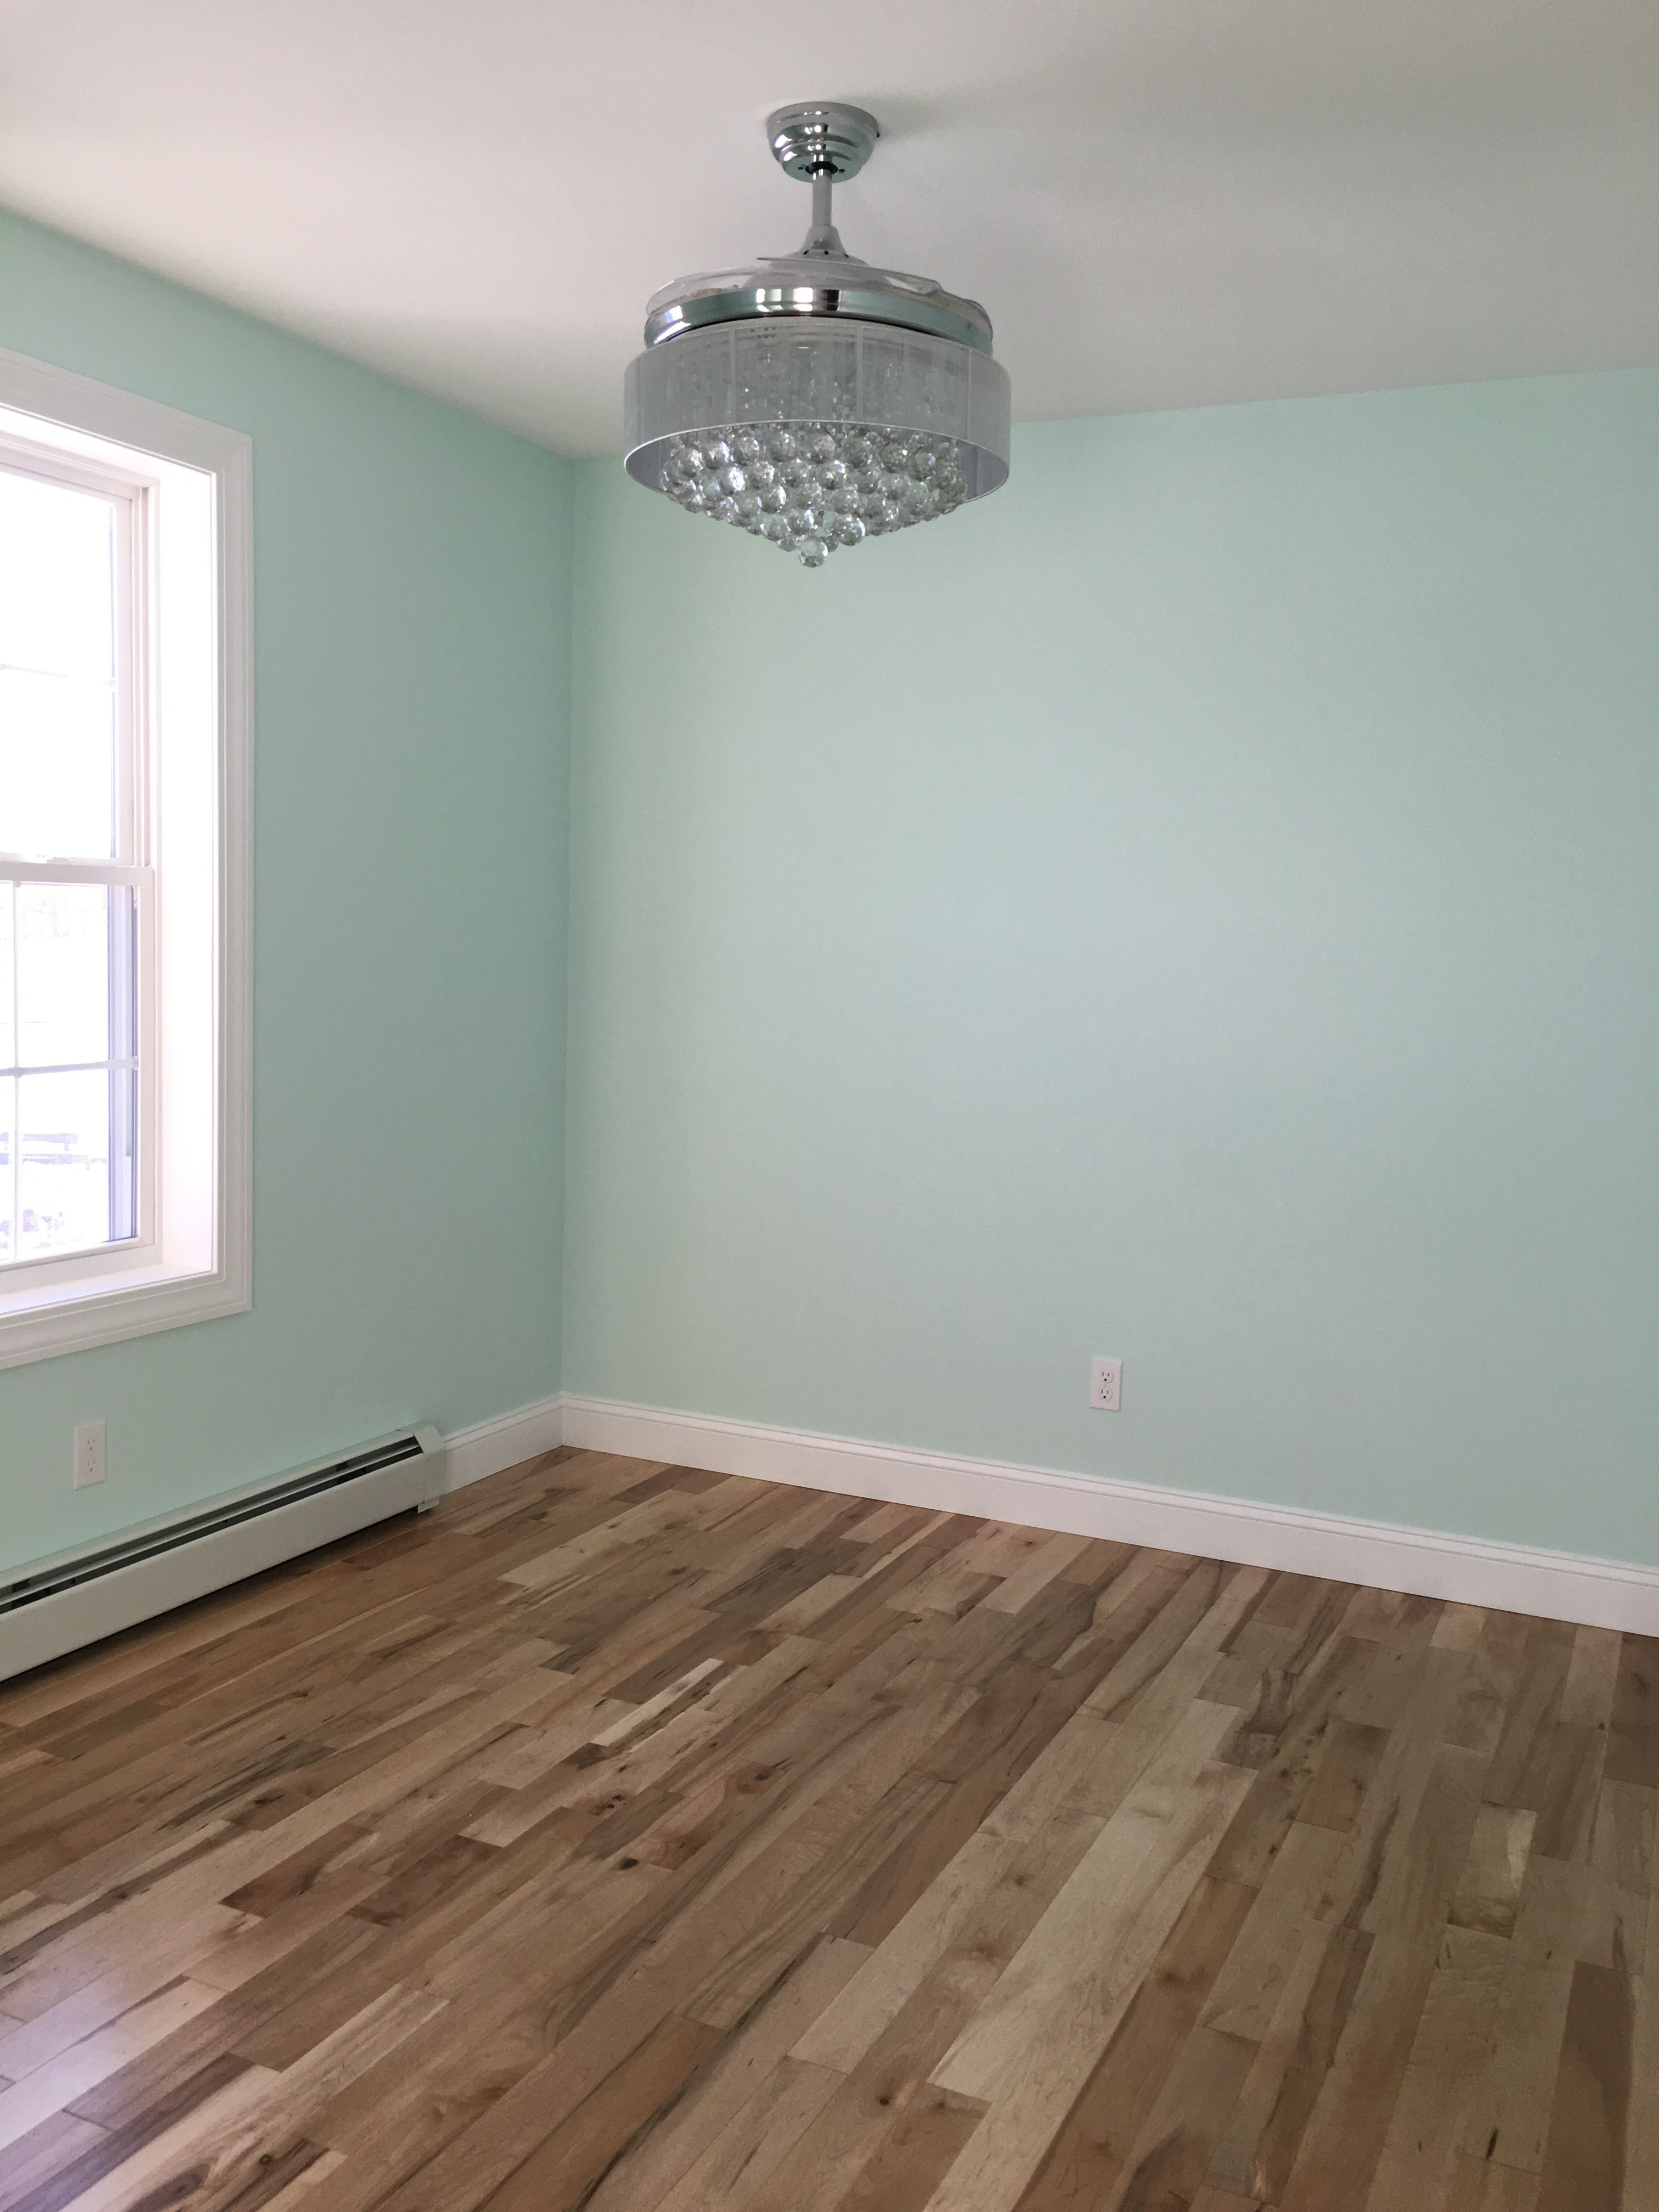 Sherwin Williams Embellished Blue Walls Paint Pinterest Blue Walls Walls And Bedrooms